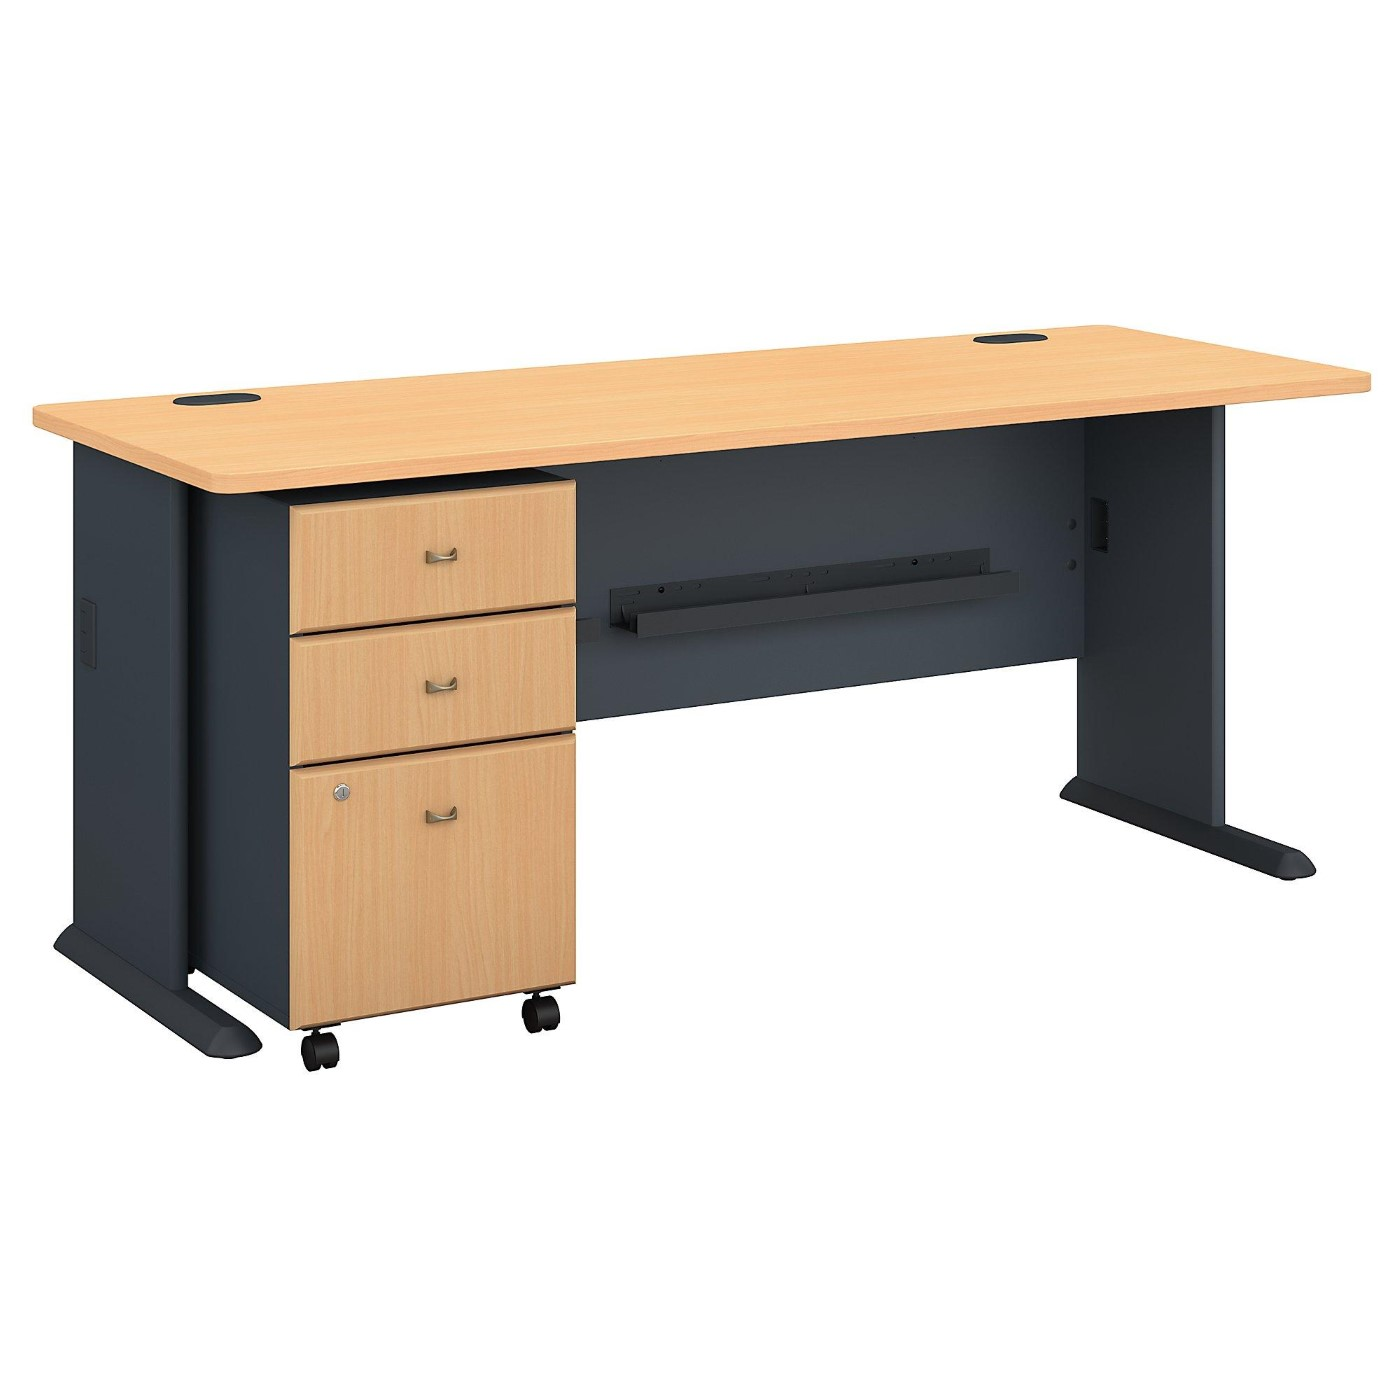 BUSH BUSINESS FURNITURE SERIES A 72W DESK WITH MOBILE FILE CABINET. FREE SHIPPING.